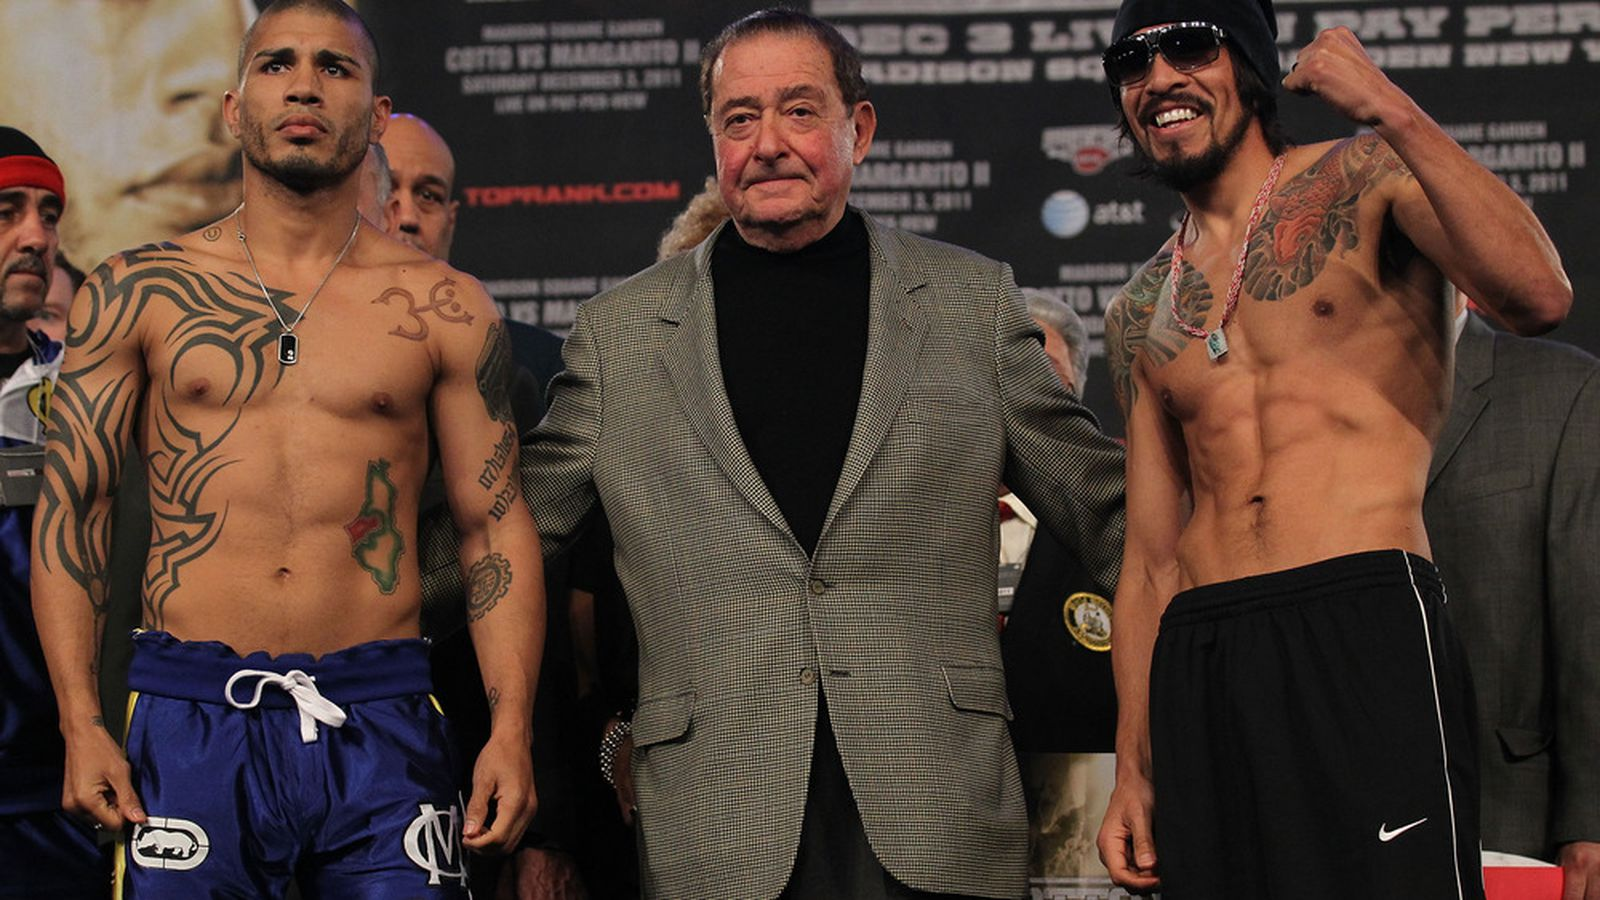 Cotto vs margarito 2 24 7 videos from hbo for Cotto new tattoo